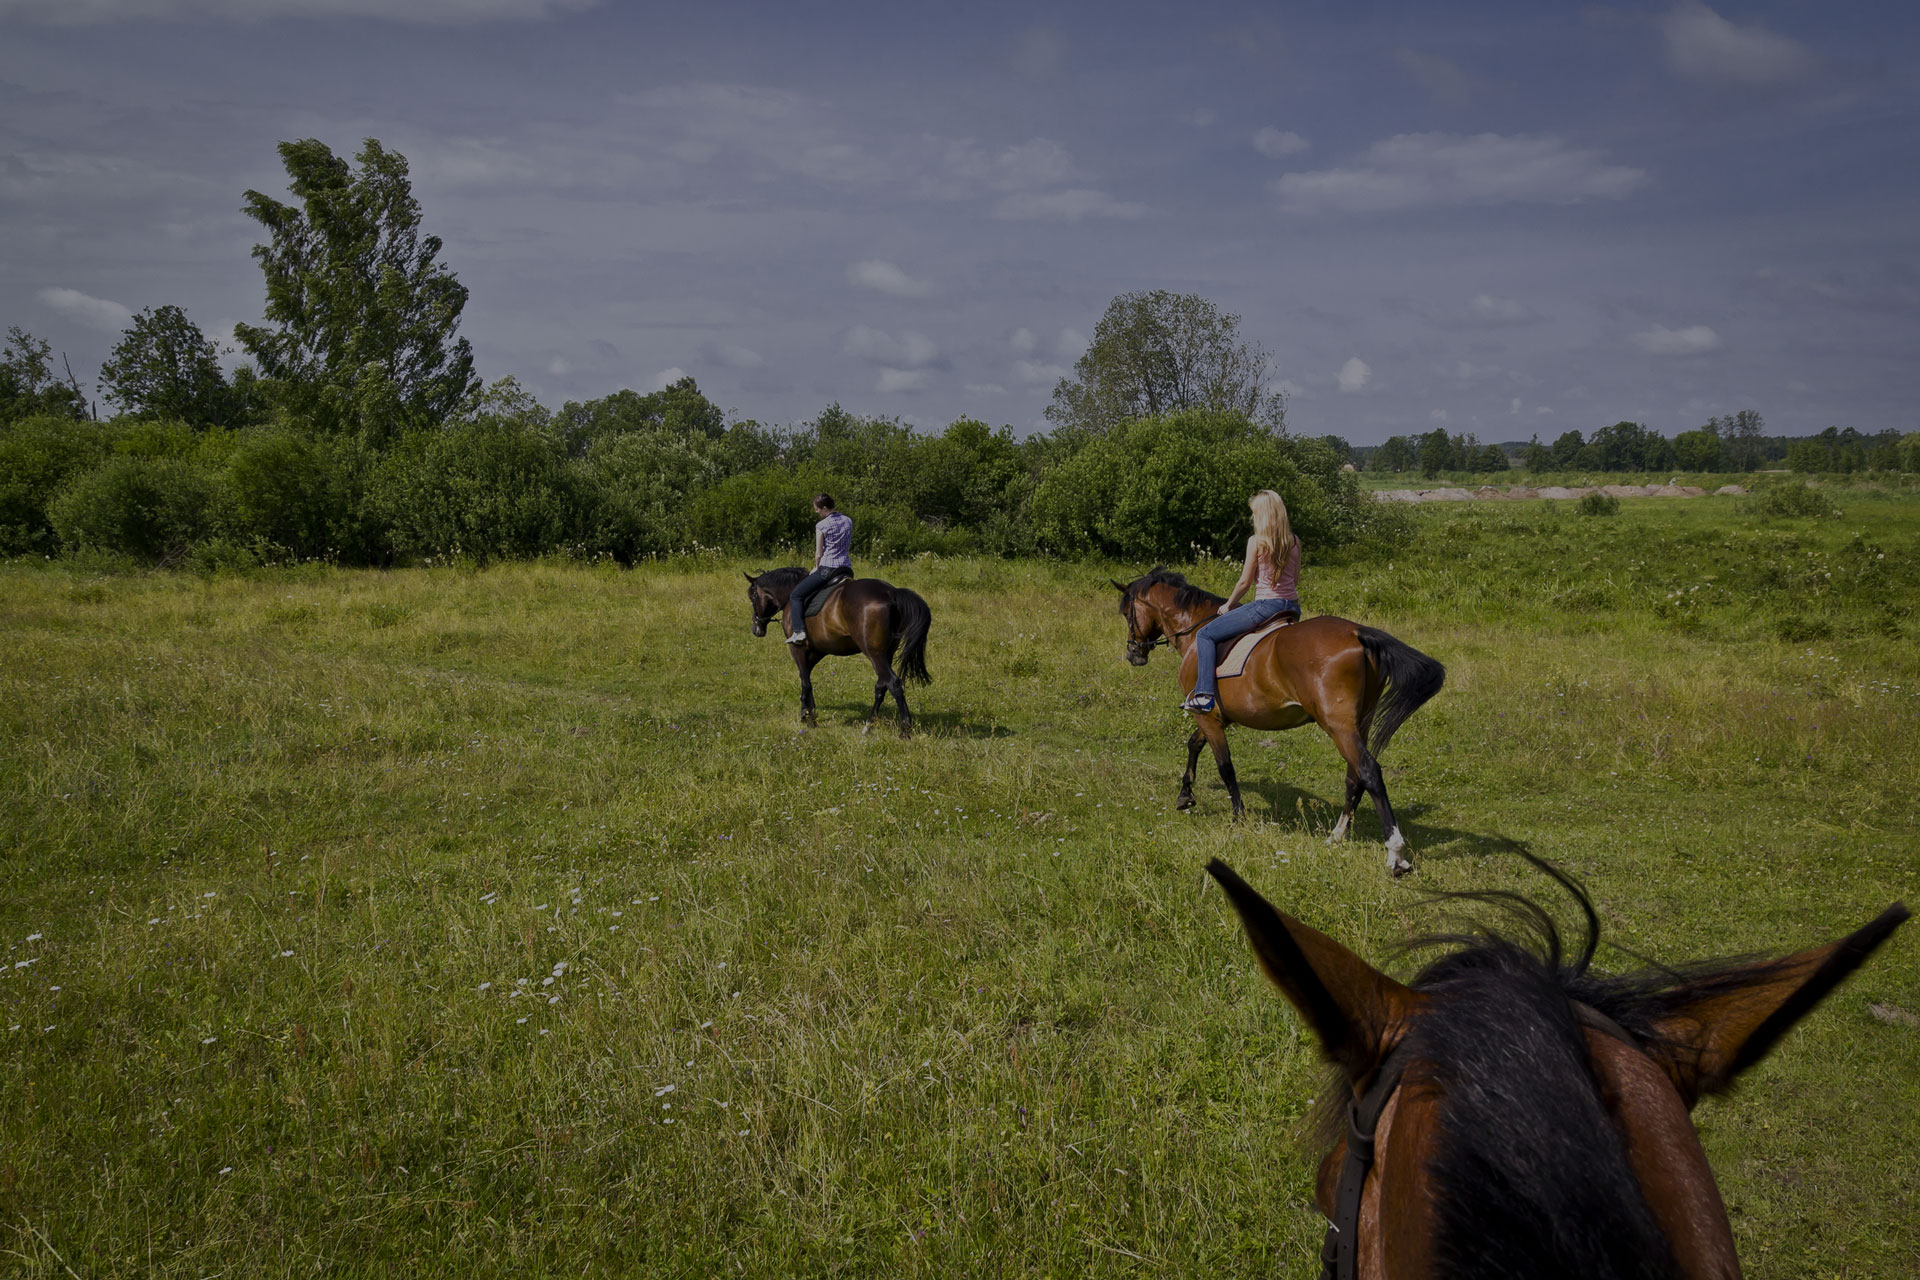 Girls riding horses in the field